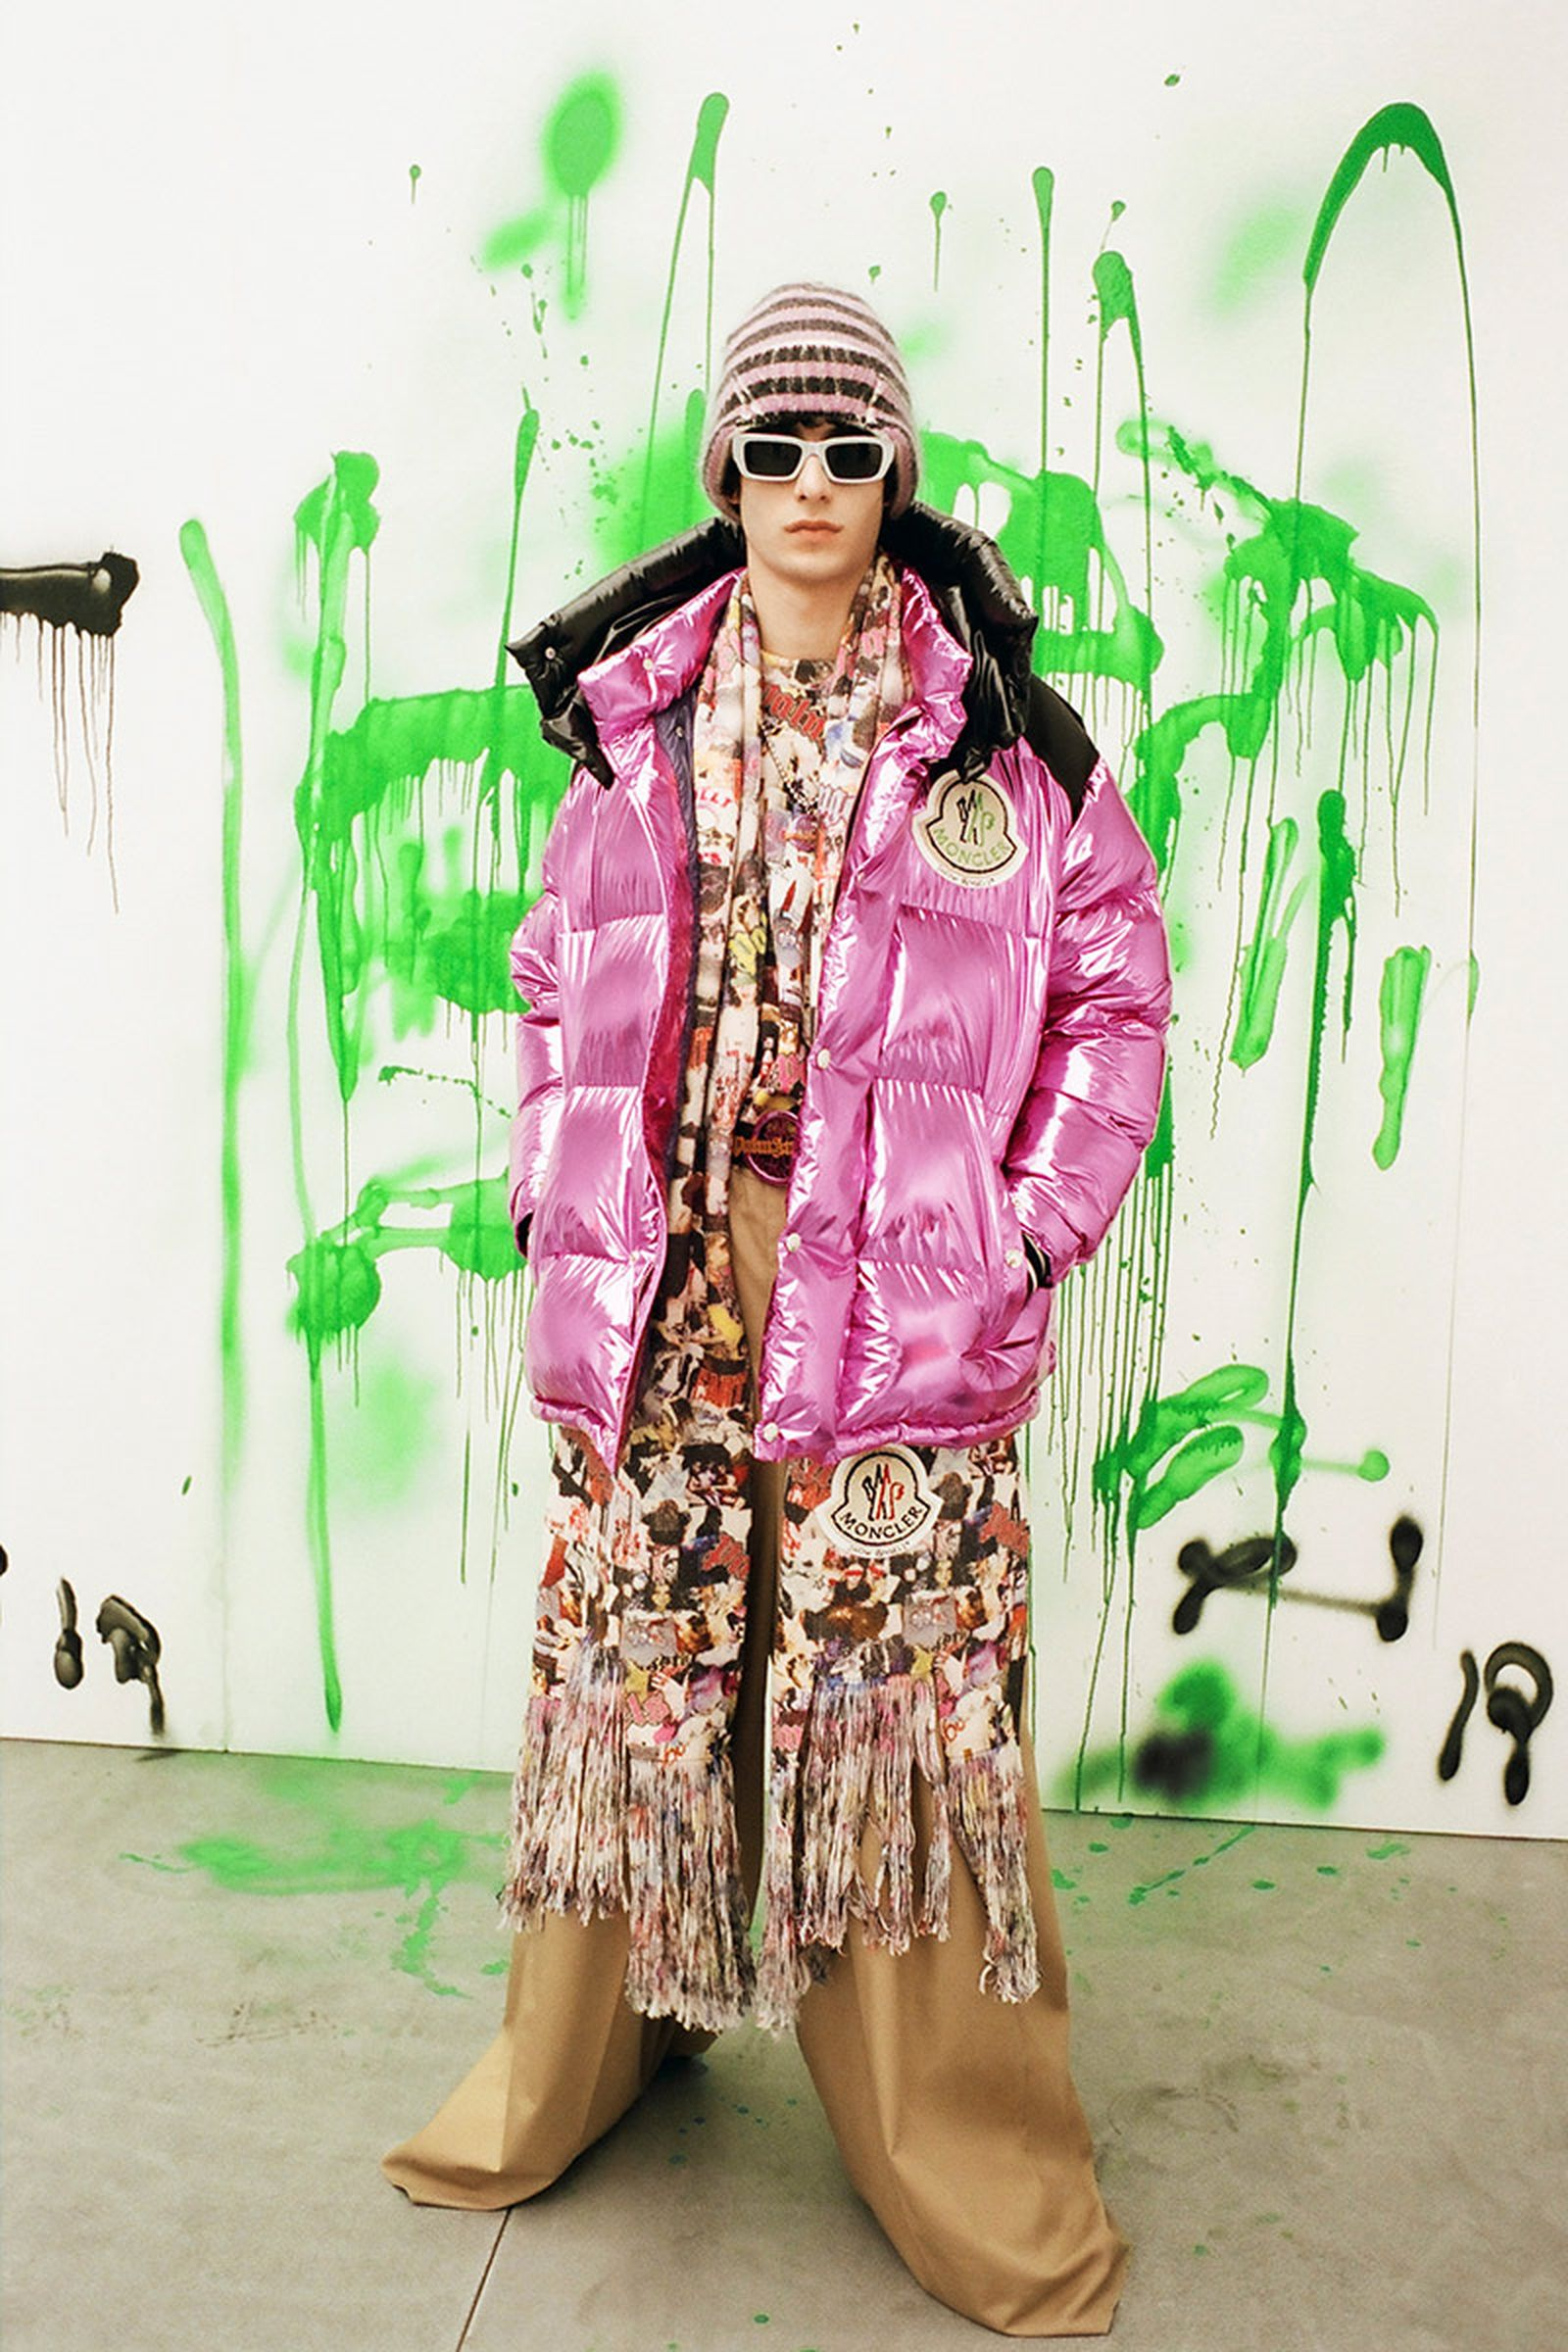 2010s-decade-luxury-streetwear-became-one-10